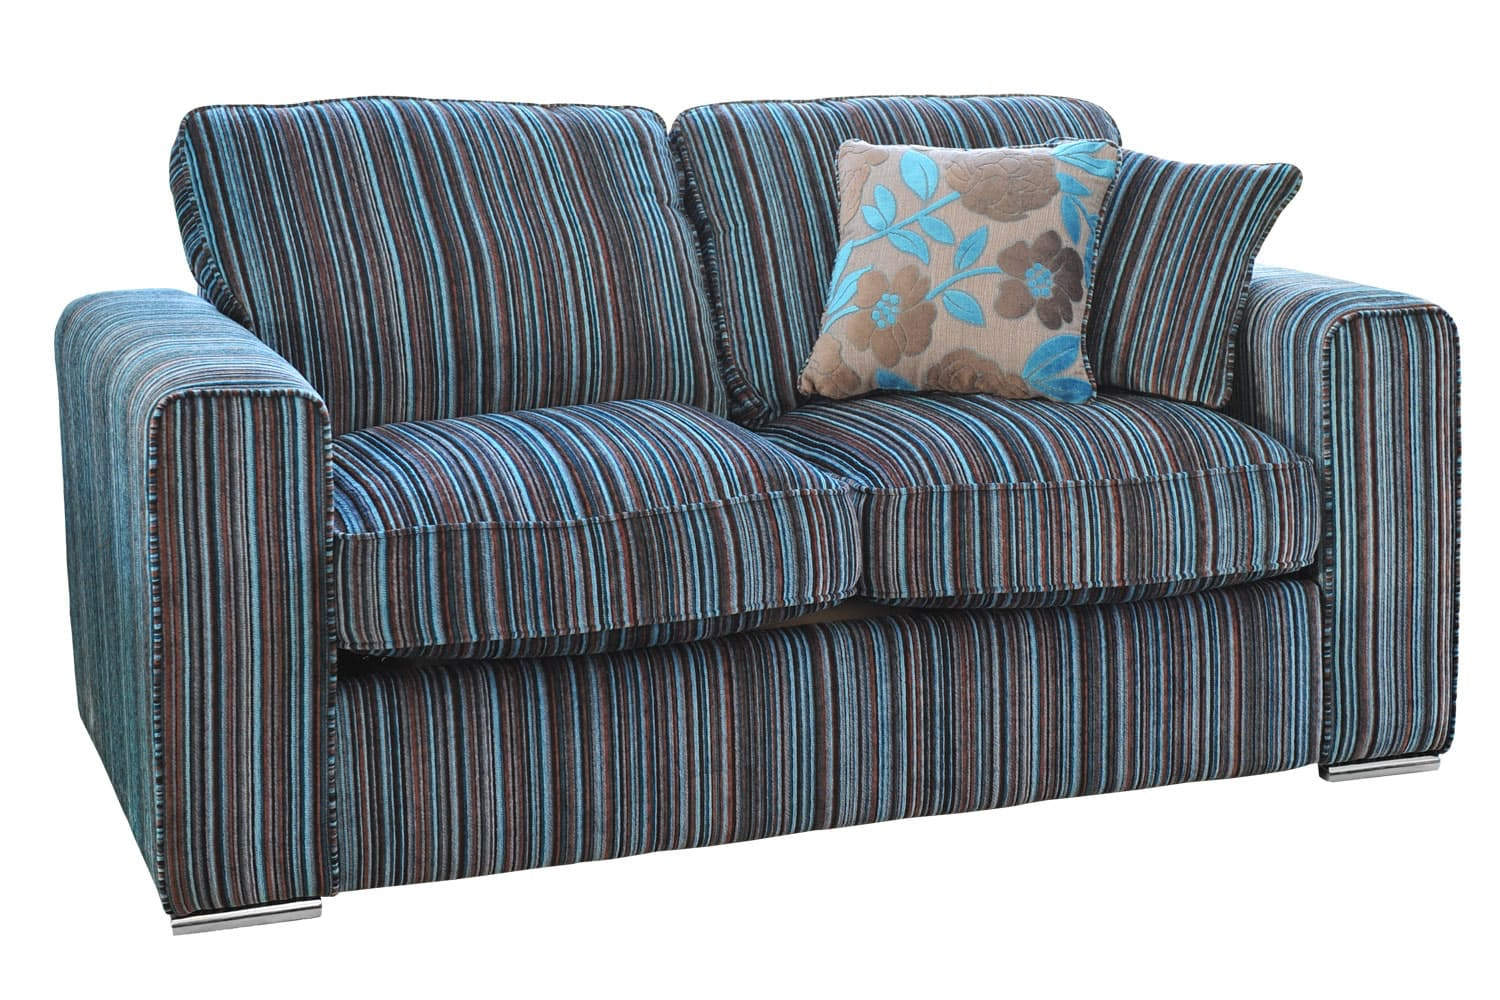 Spencer 2 Seater Sofa Bed